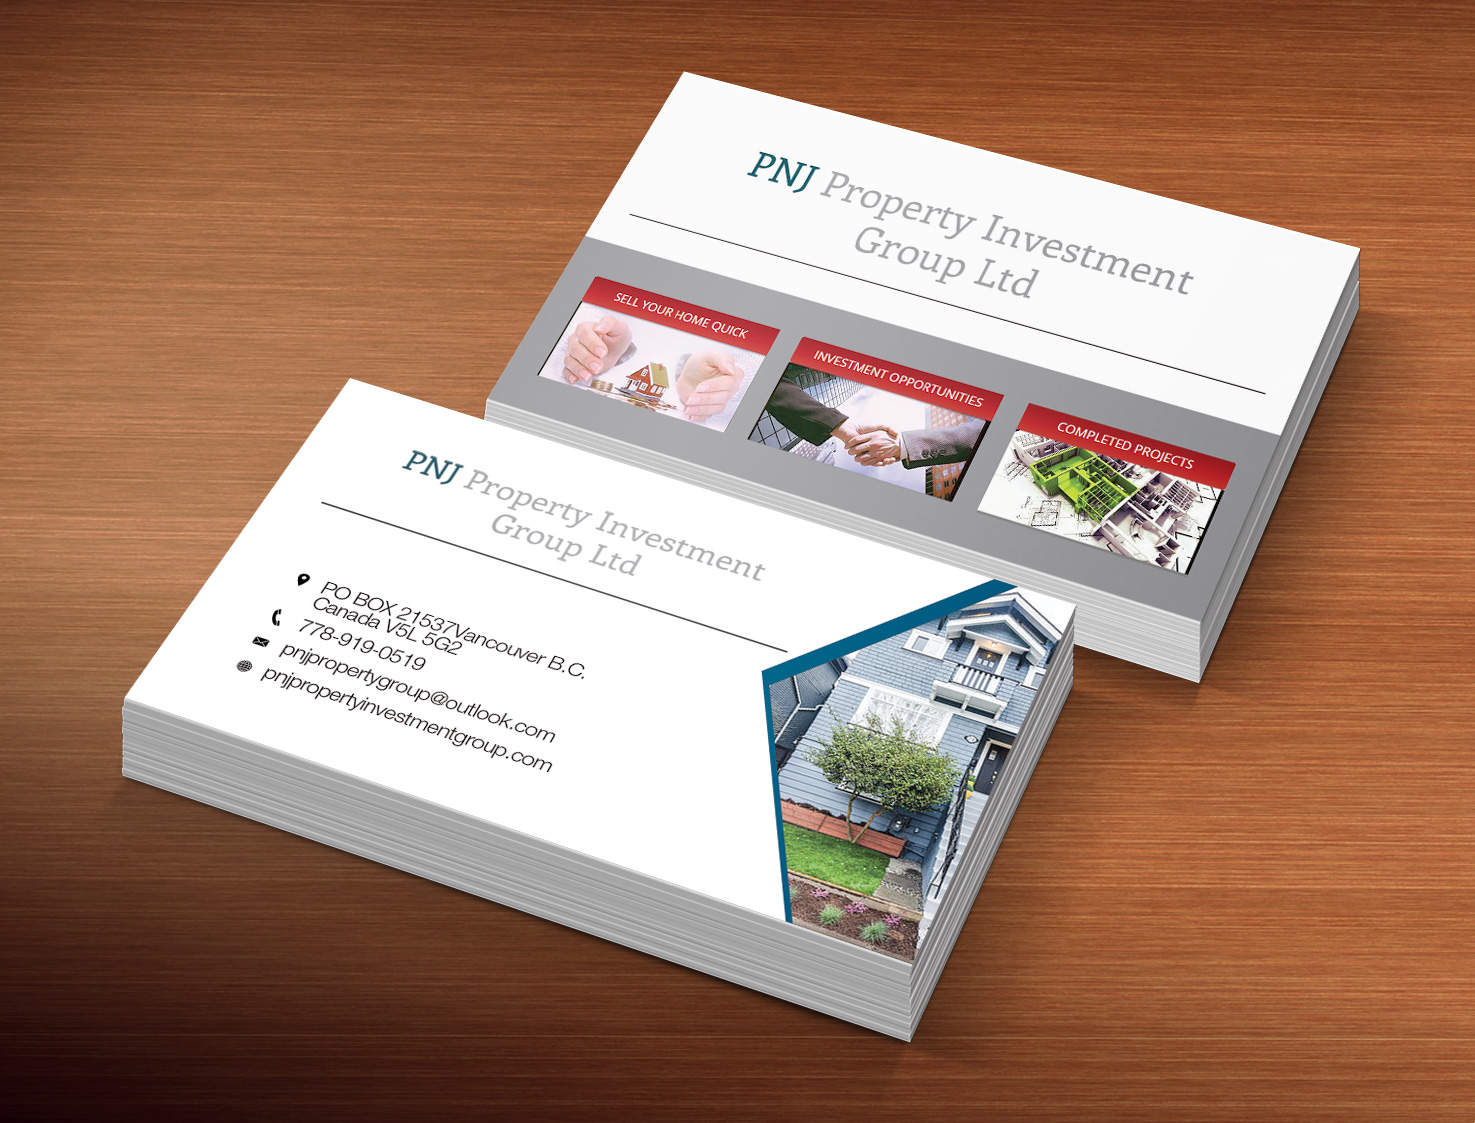 Investment business card design for pnj property investment group business card design by creation lanka for pnj property investment group ltd design colourmoves Choice Image